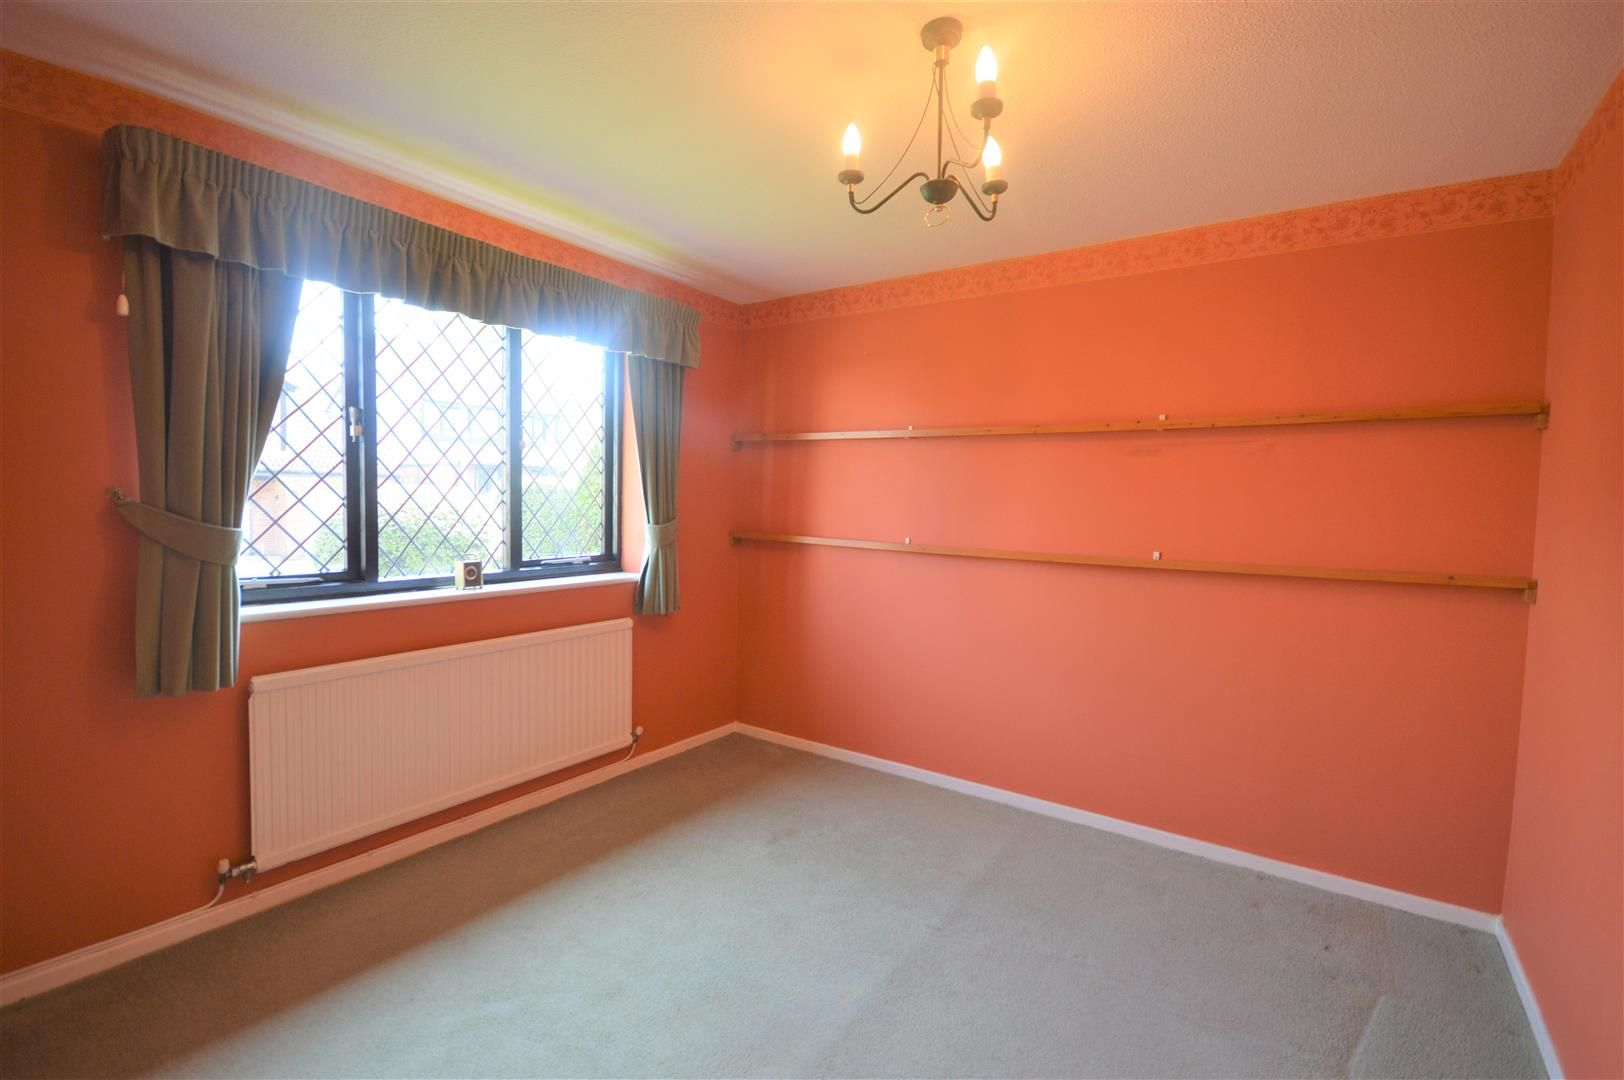 3 bed detached for sale in Leominster 4